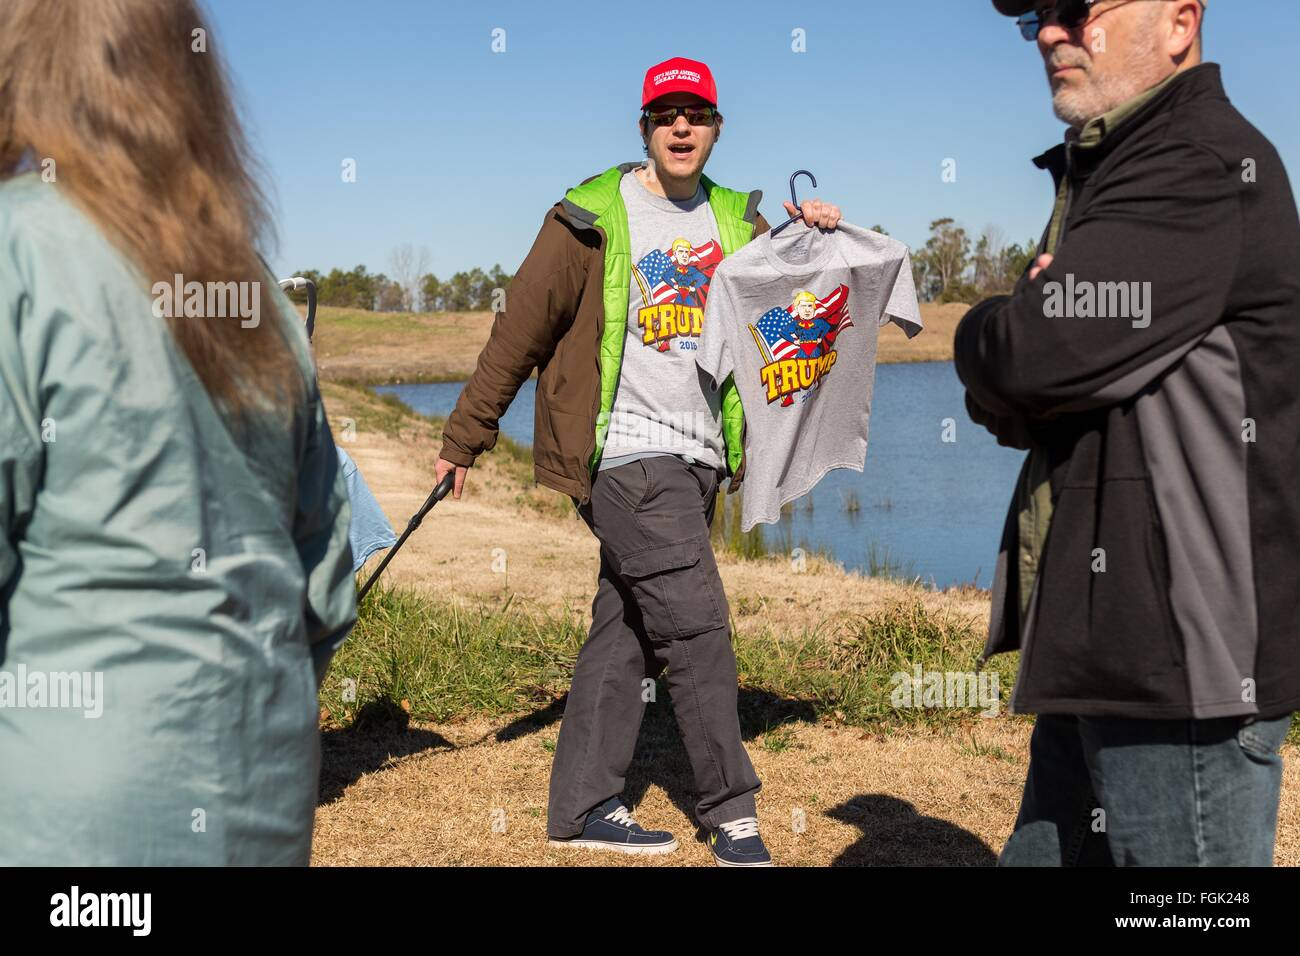 Myrtle Beach, South Carolina, USA. 19th February, 2016. A vendor sells tee shirts with slogans supporting billionaire - Stock Image